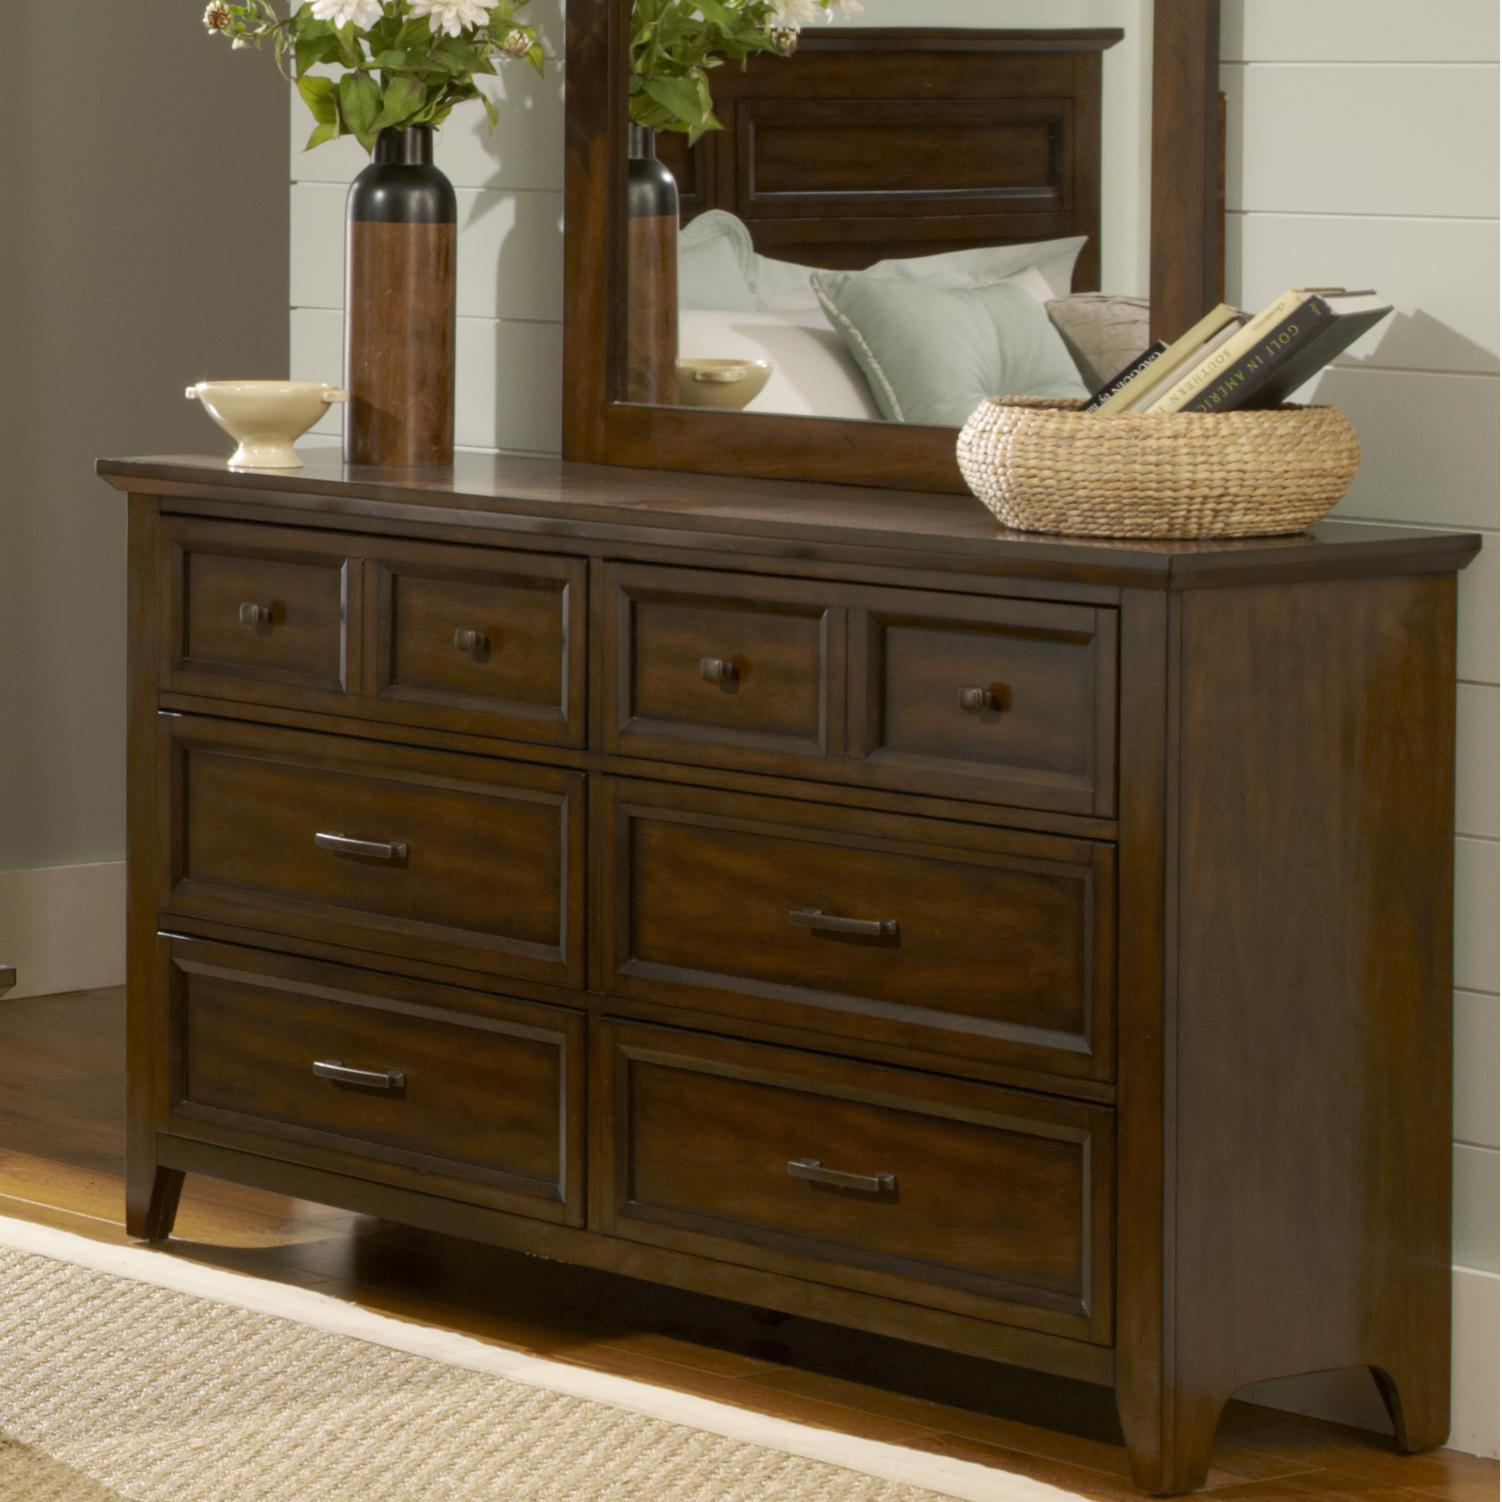 Liberty Furniture Laurel Creek 6-Drawer Dresser - Item Number: 461-BR31